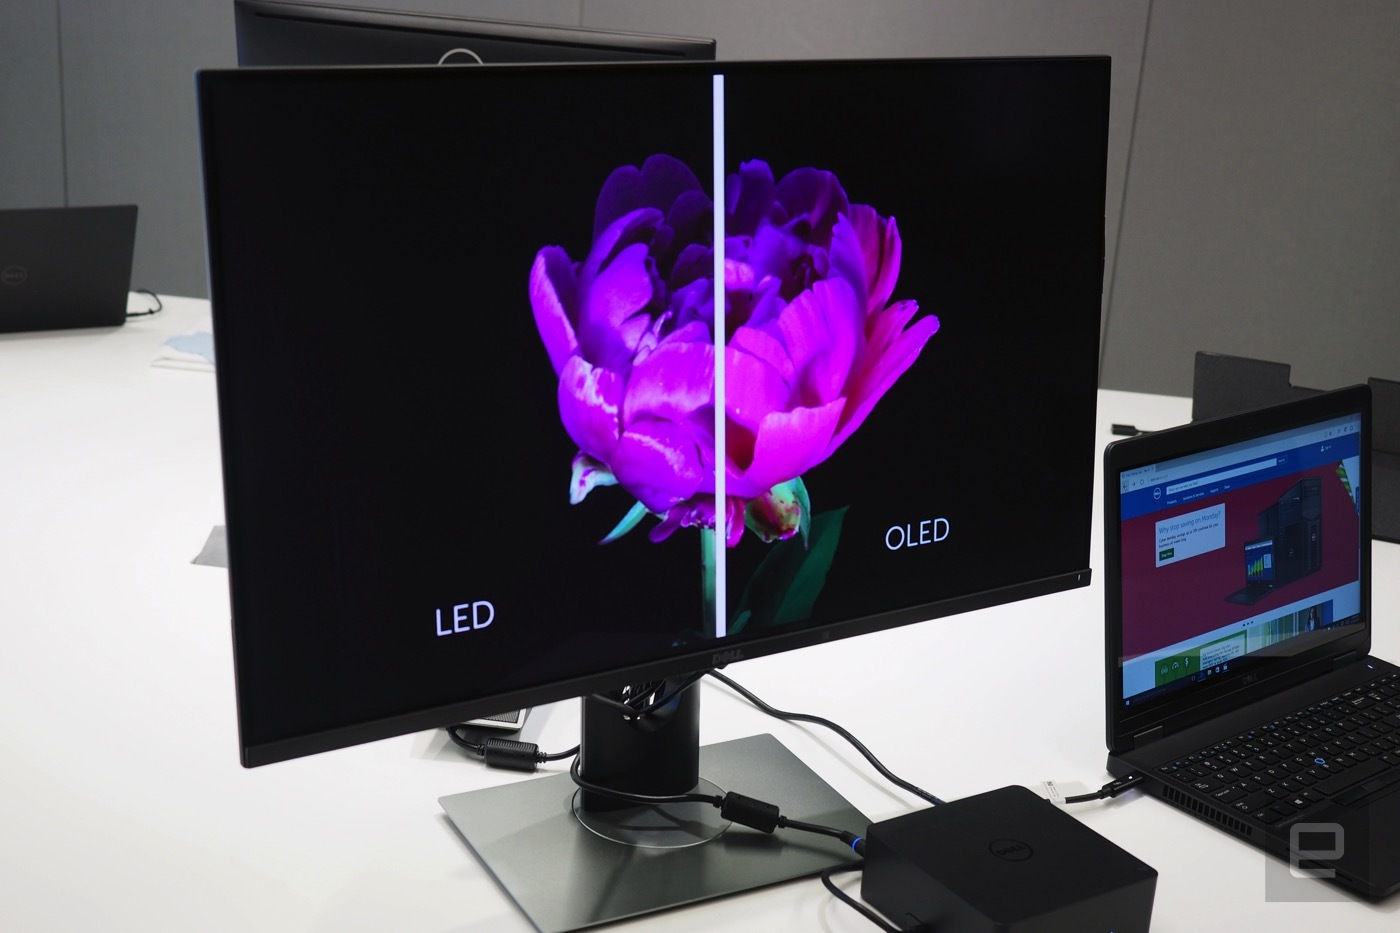 dell panel oled 4k ces 2016 5